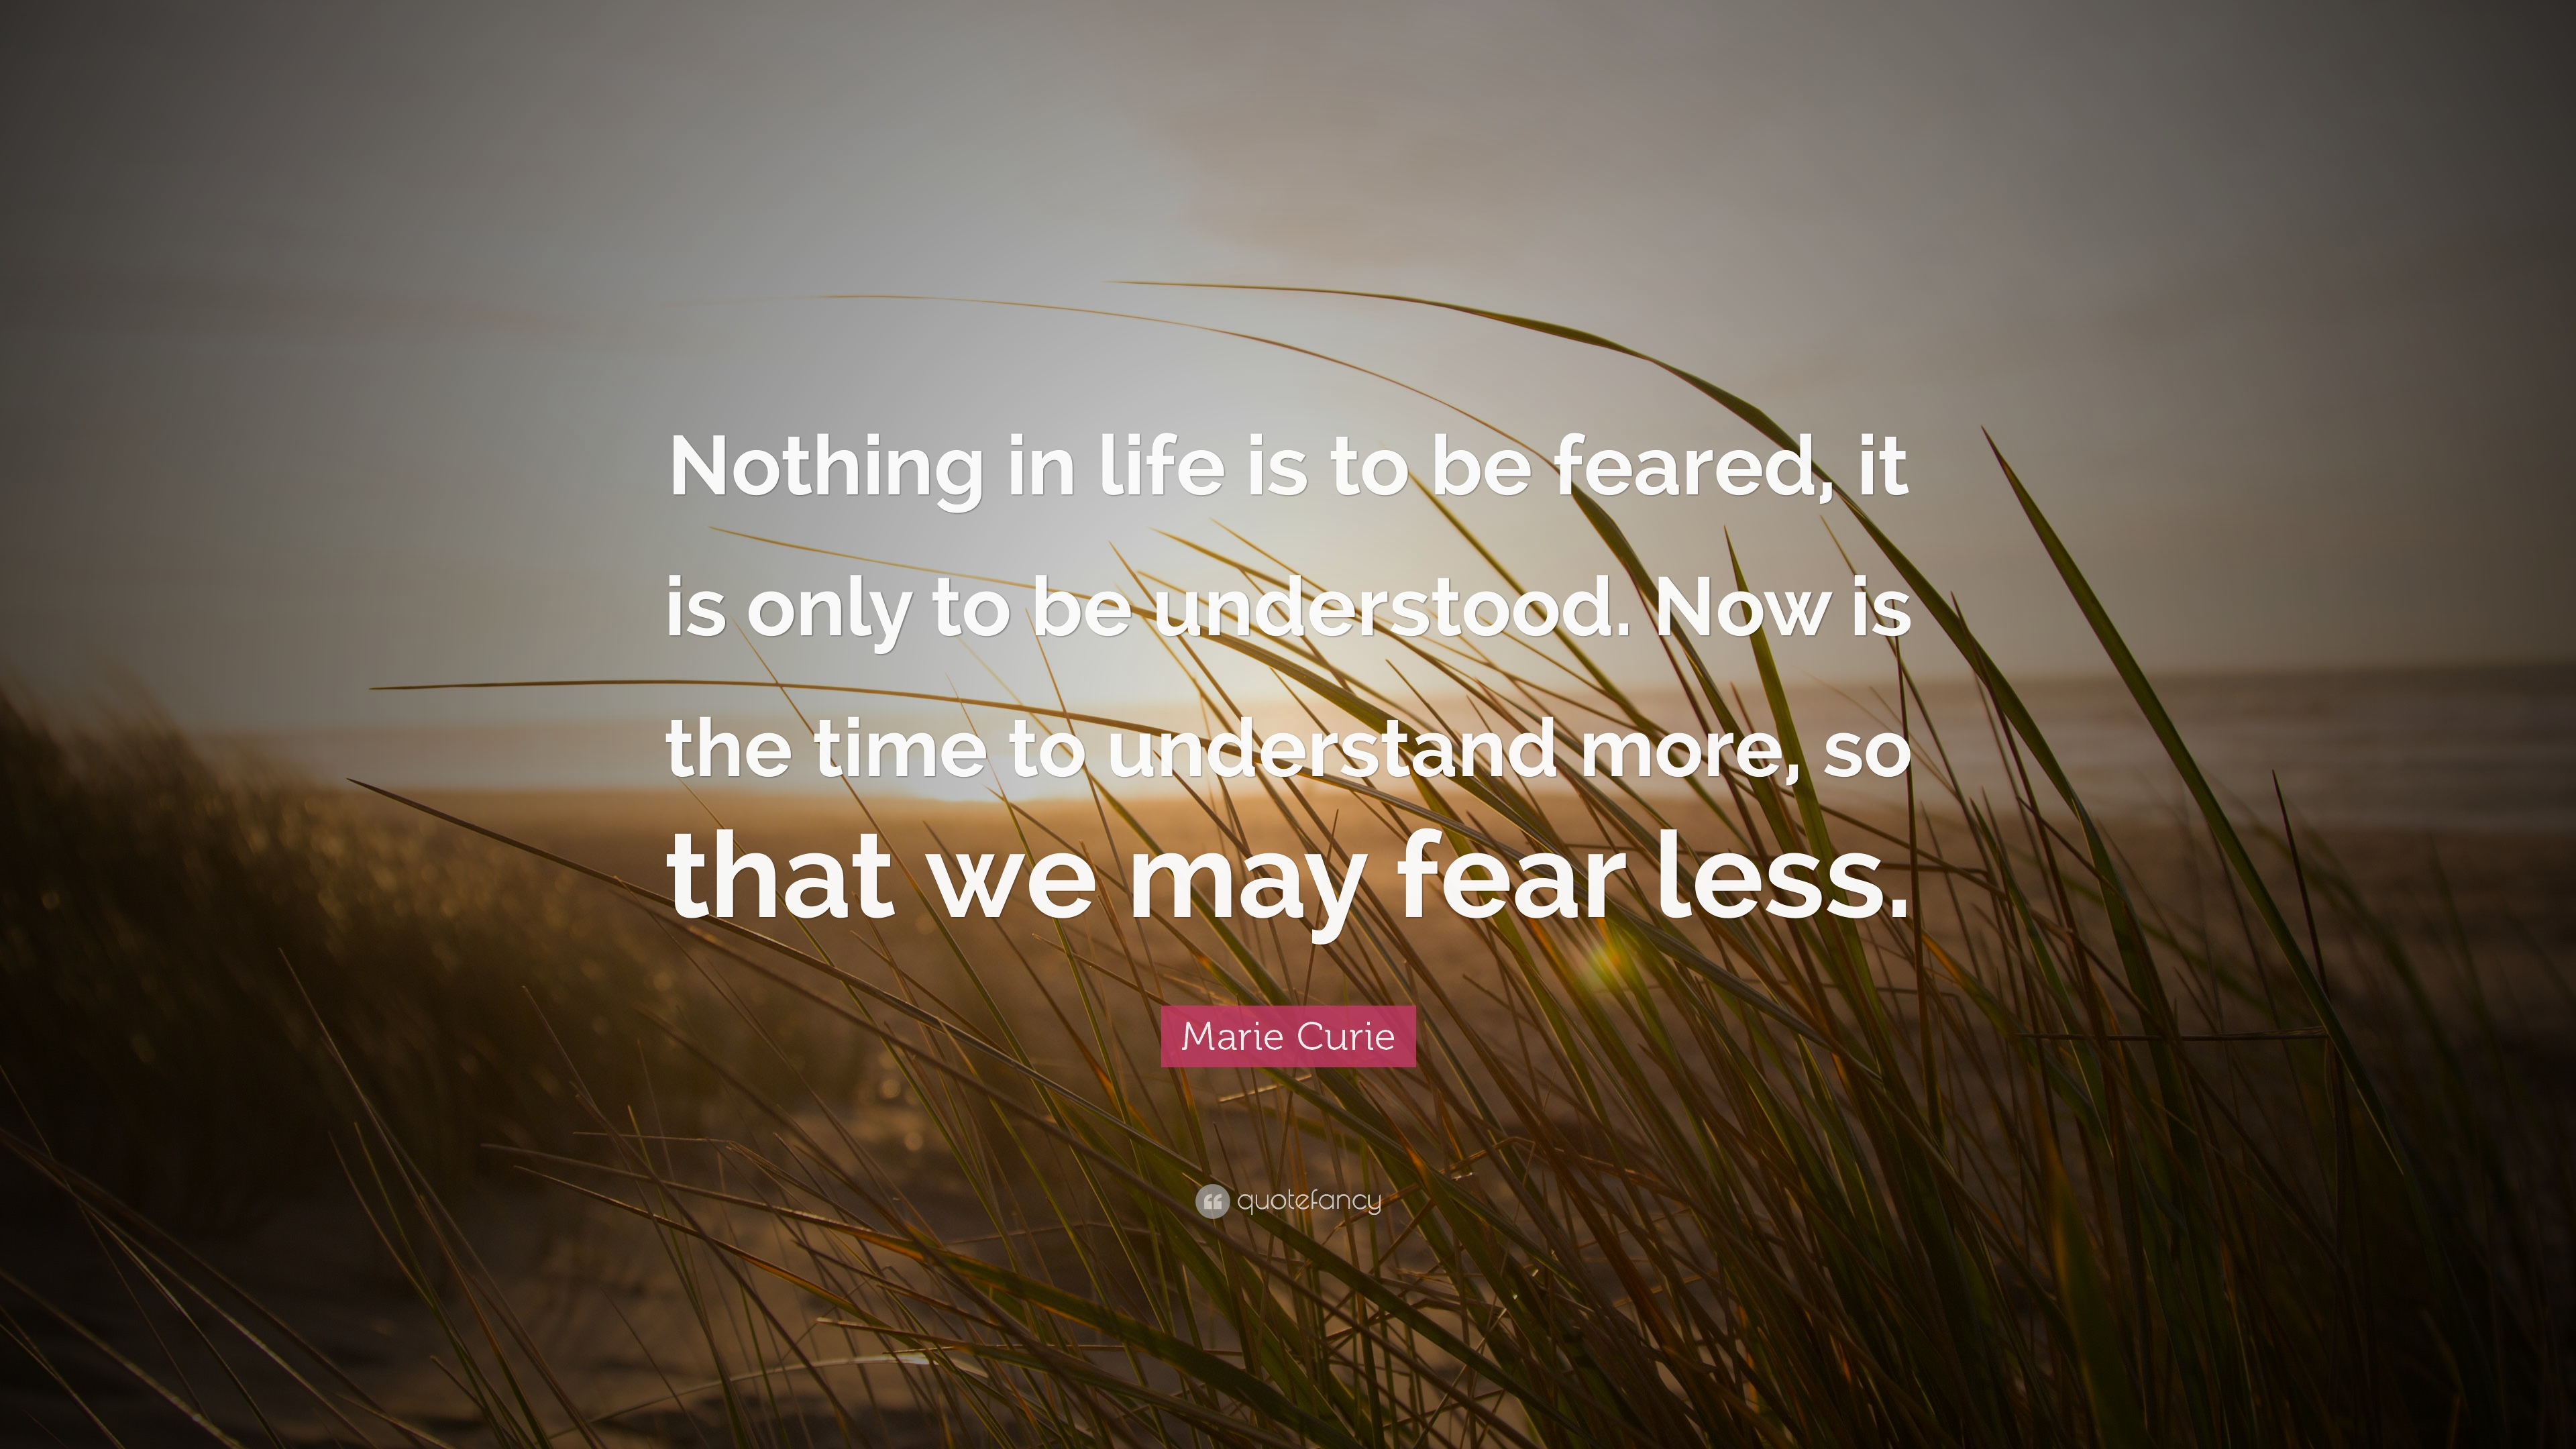 """nothing in life is to be feared it is only to be understood """"nothing in life is to be feared, it is only to be understood now is the time to  understand more, so that we may fear less"""" share an example of a time when  you."""